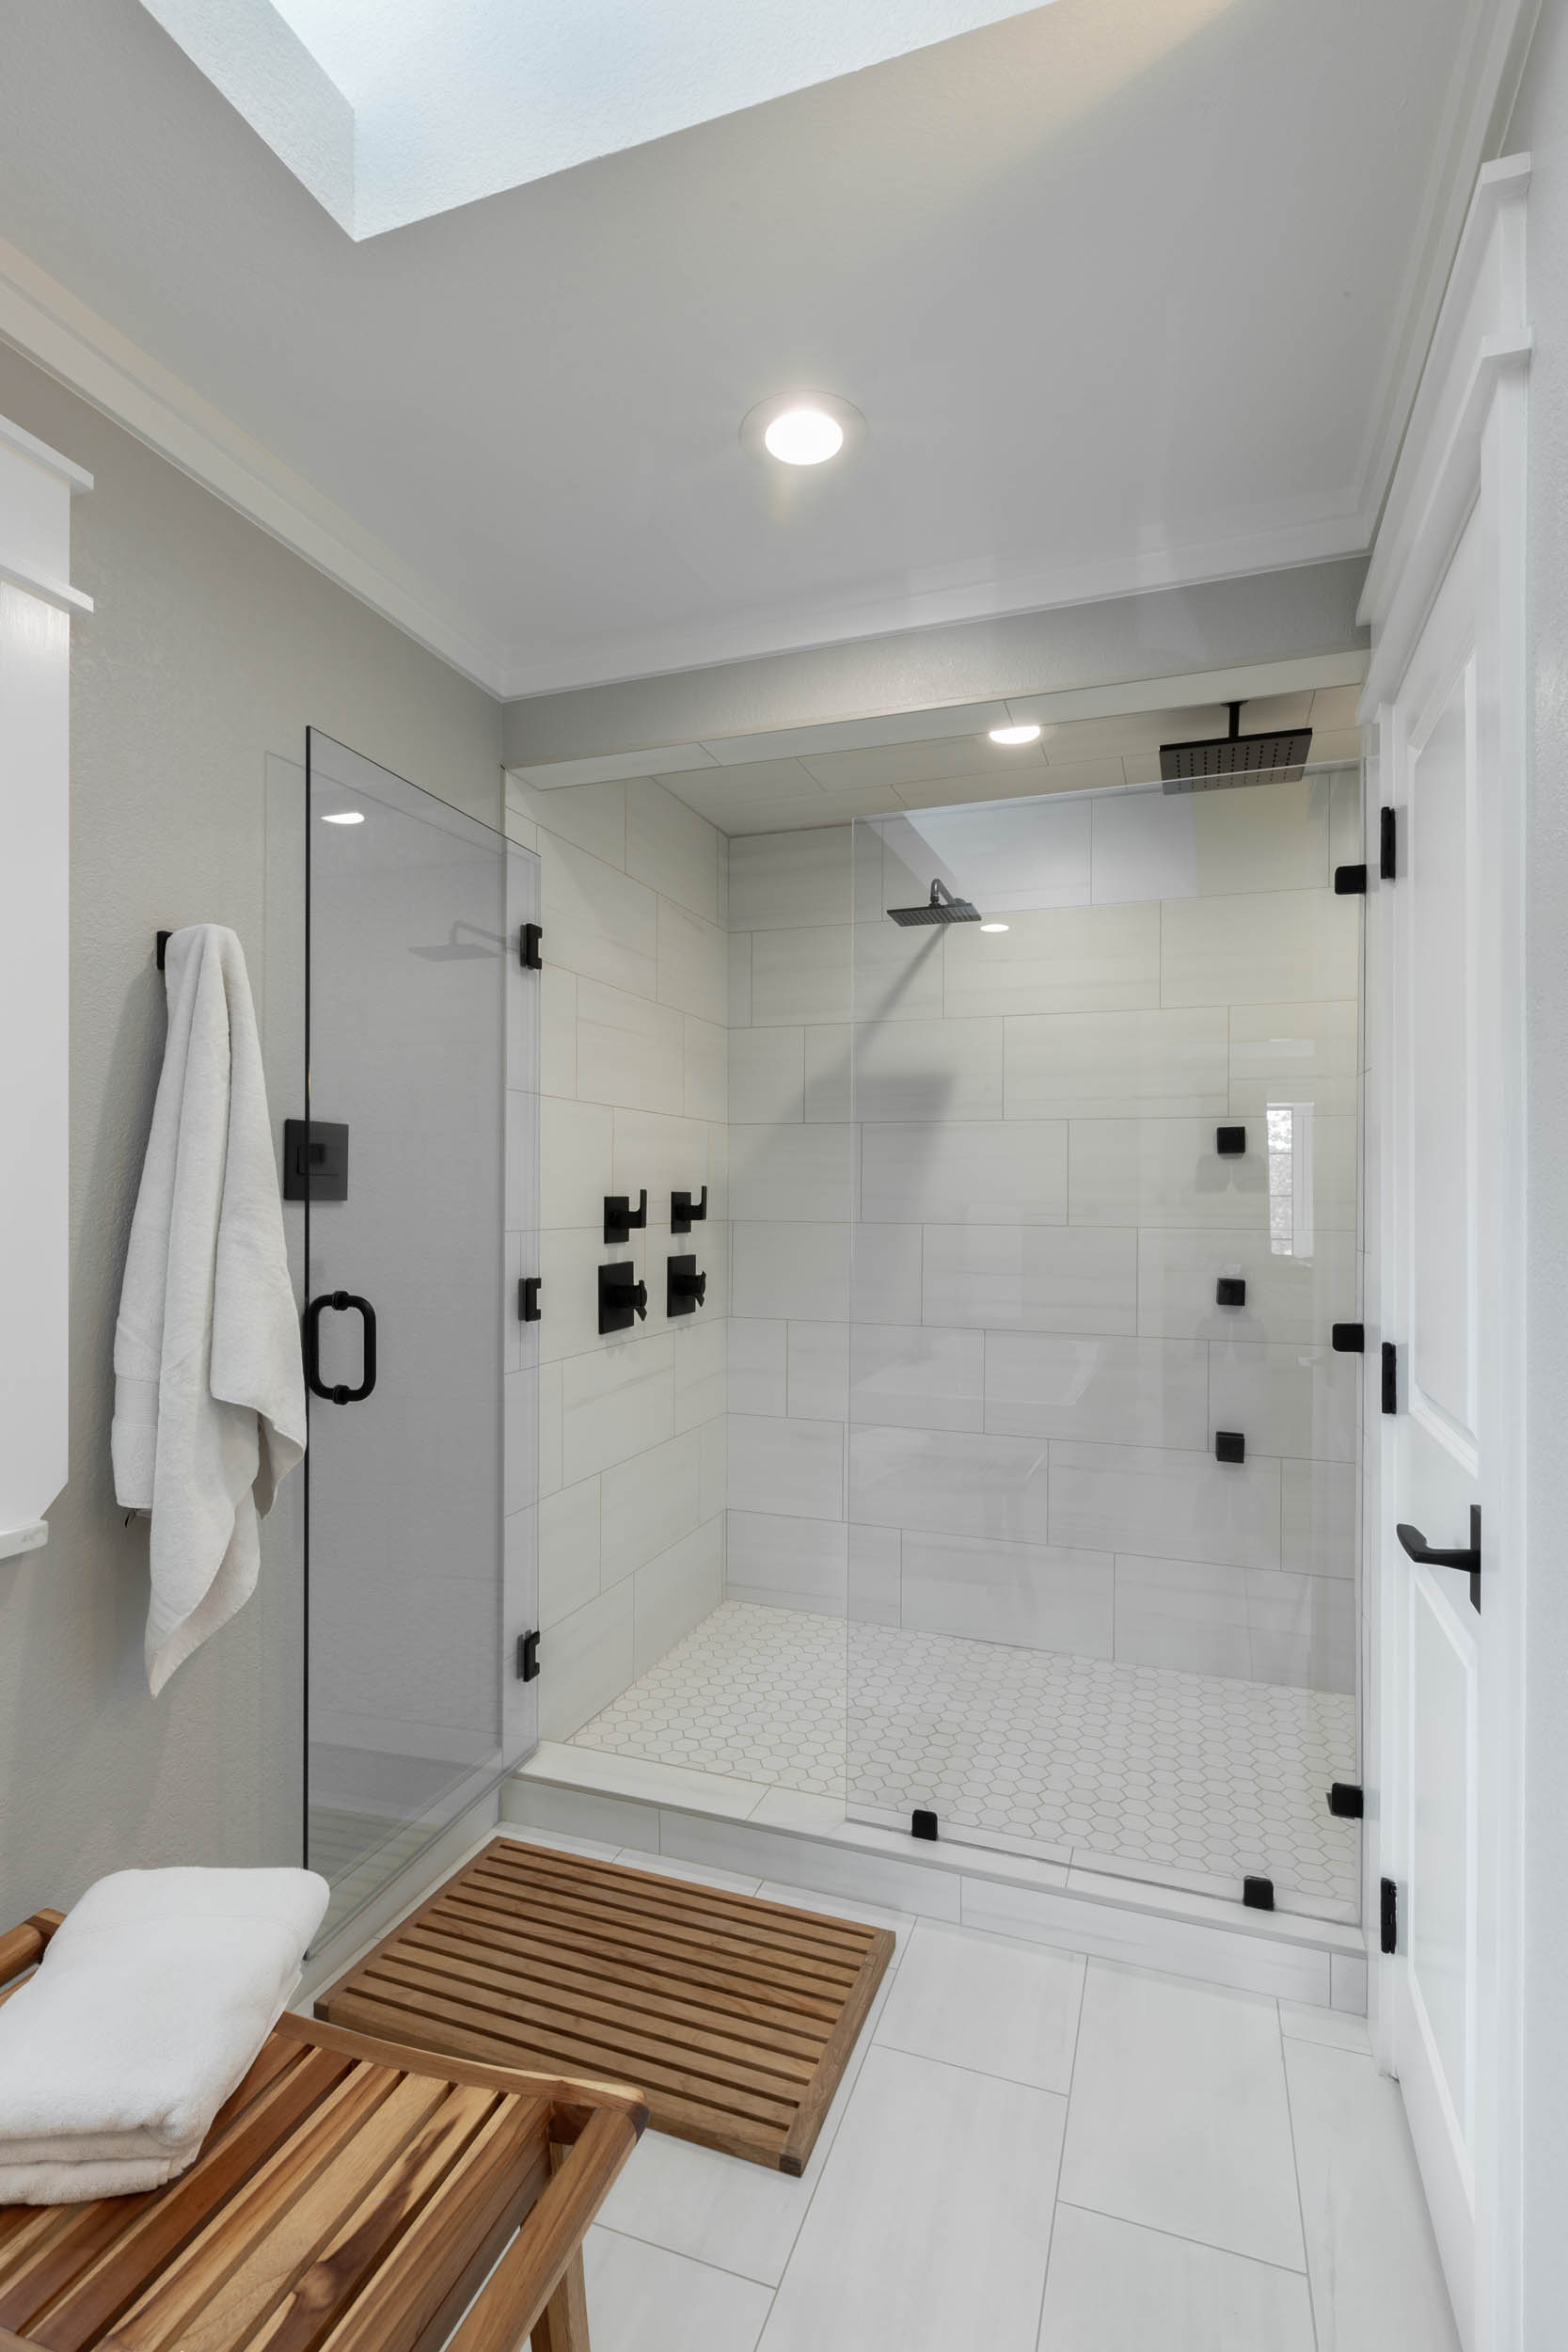 after picture of bathroom remodel with black and white